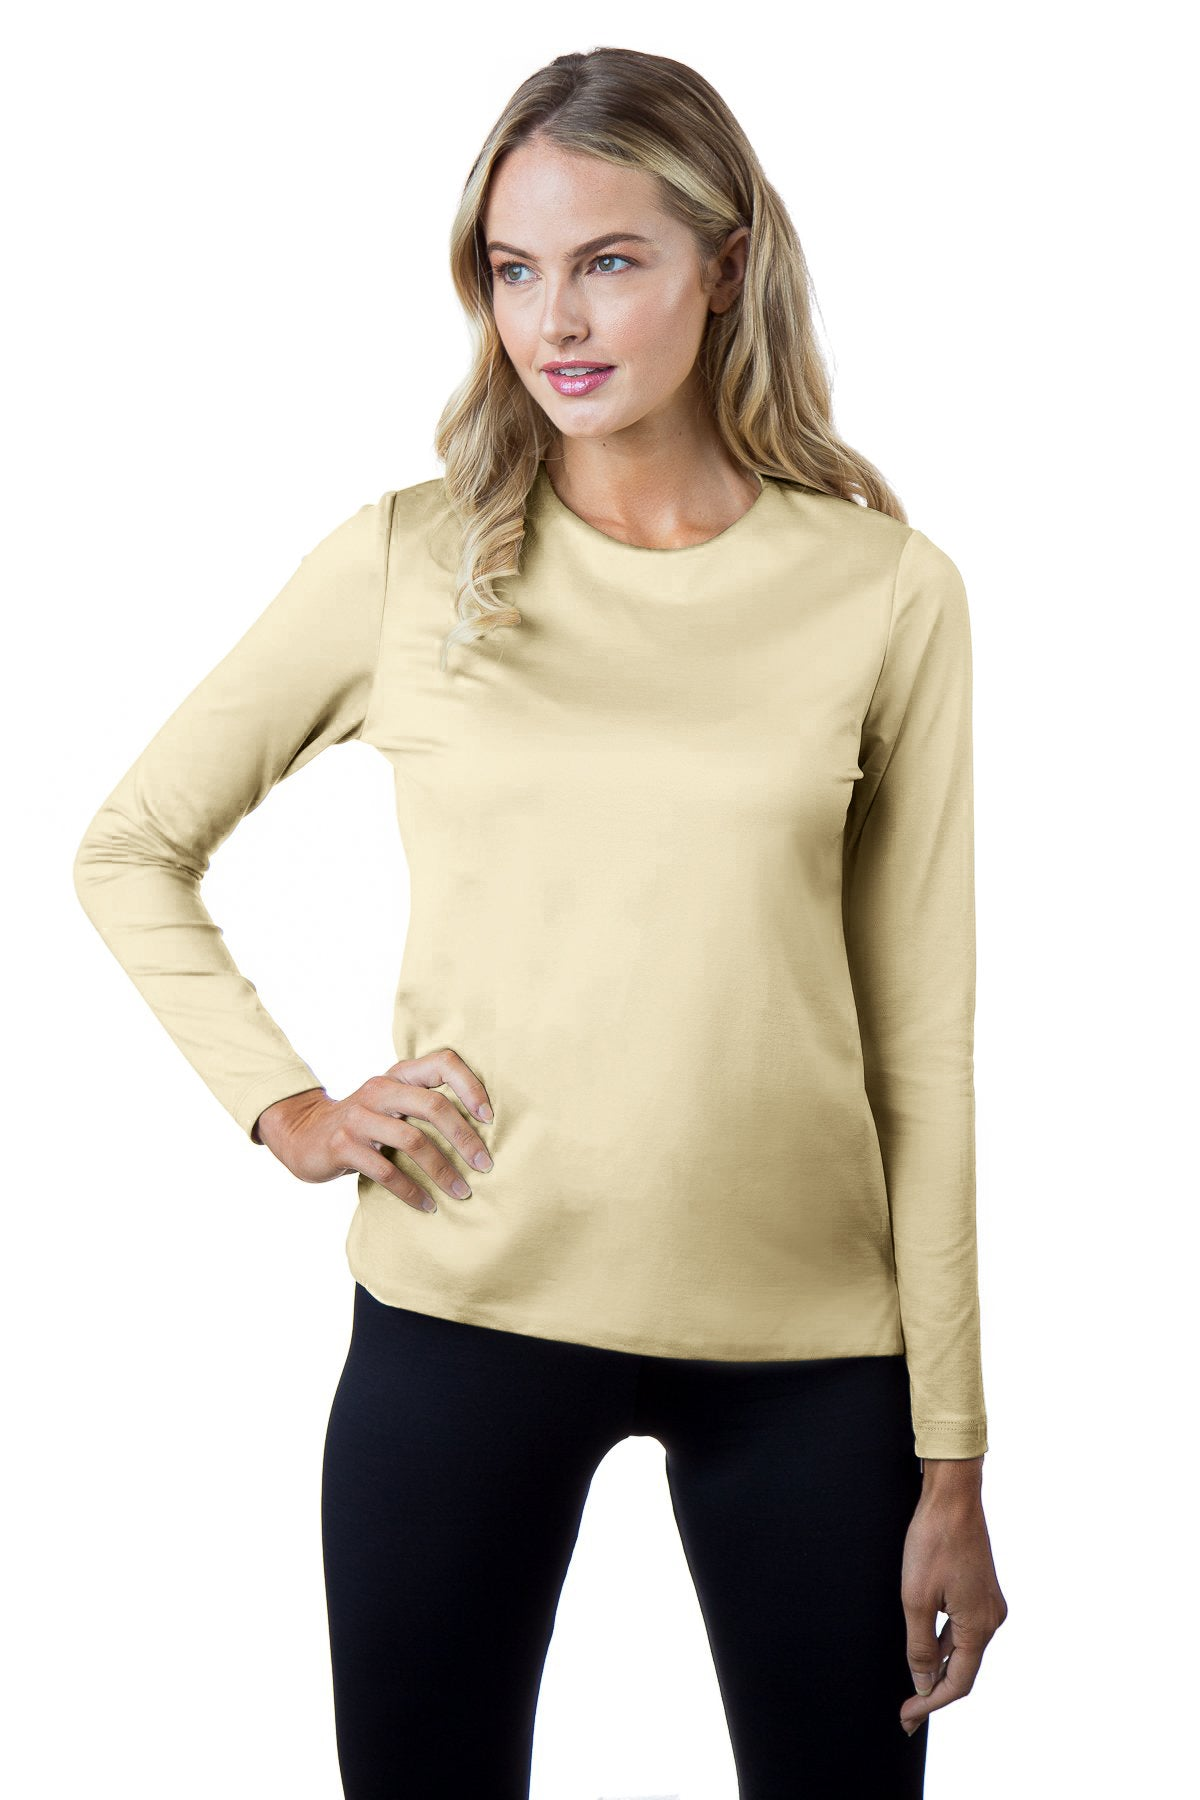 The Classic Long Sleeve